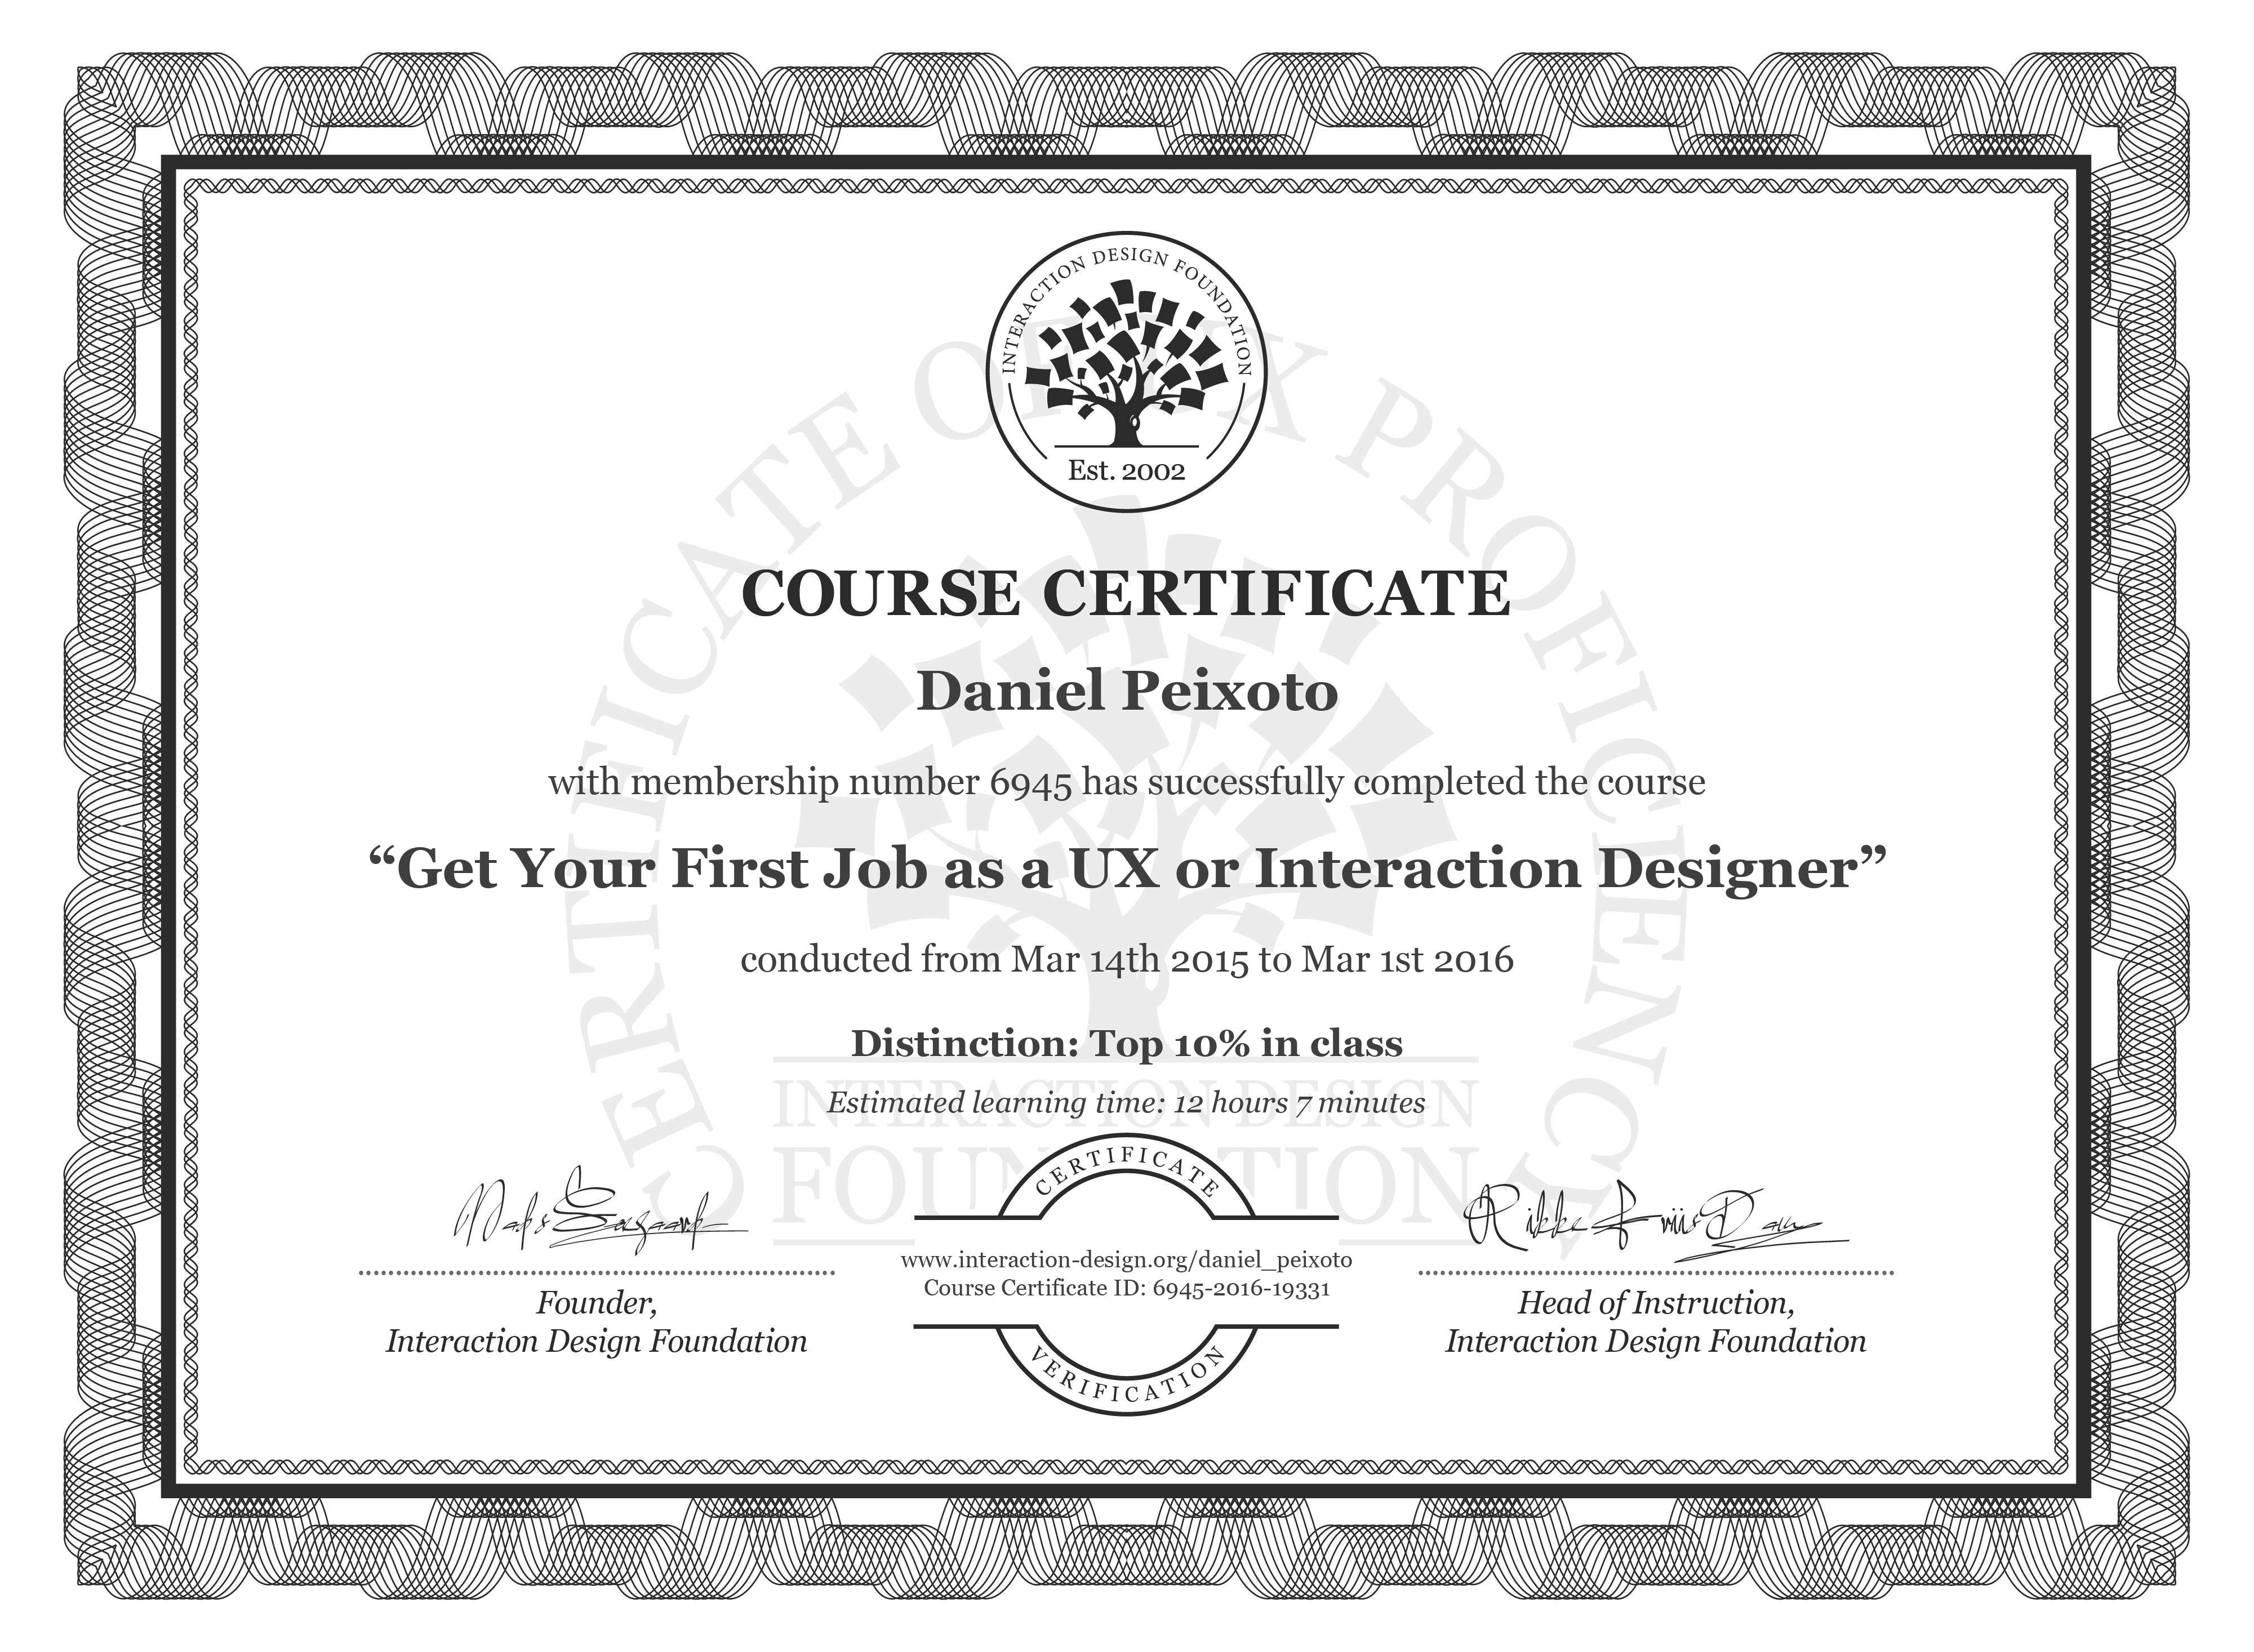 Daniel Peixoto: Course Certificate - Get Your First Job as a UX or Interaction Designer